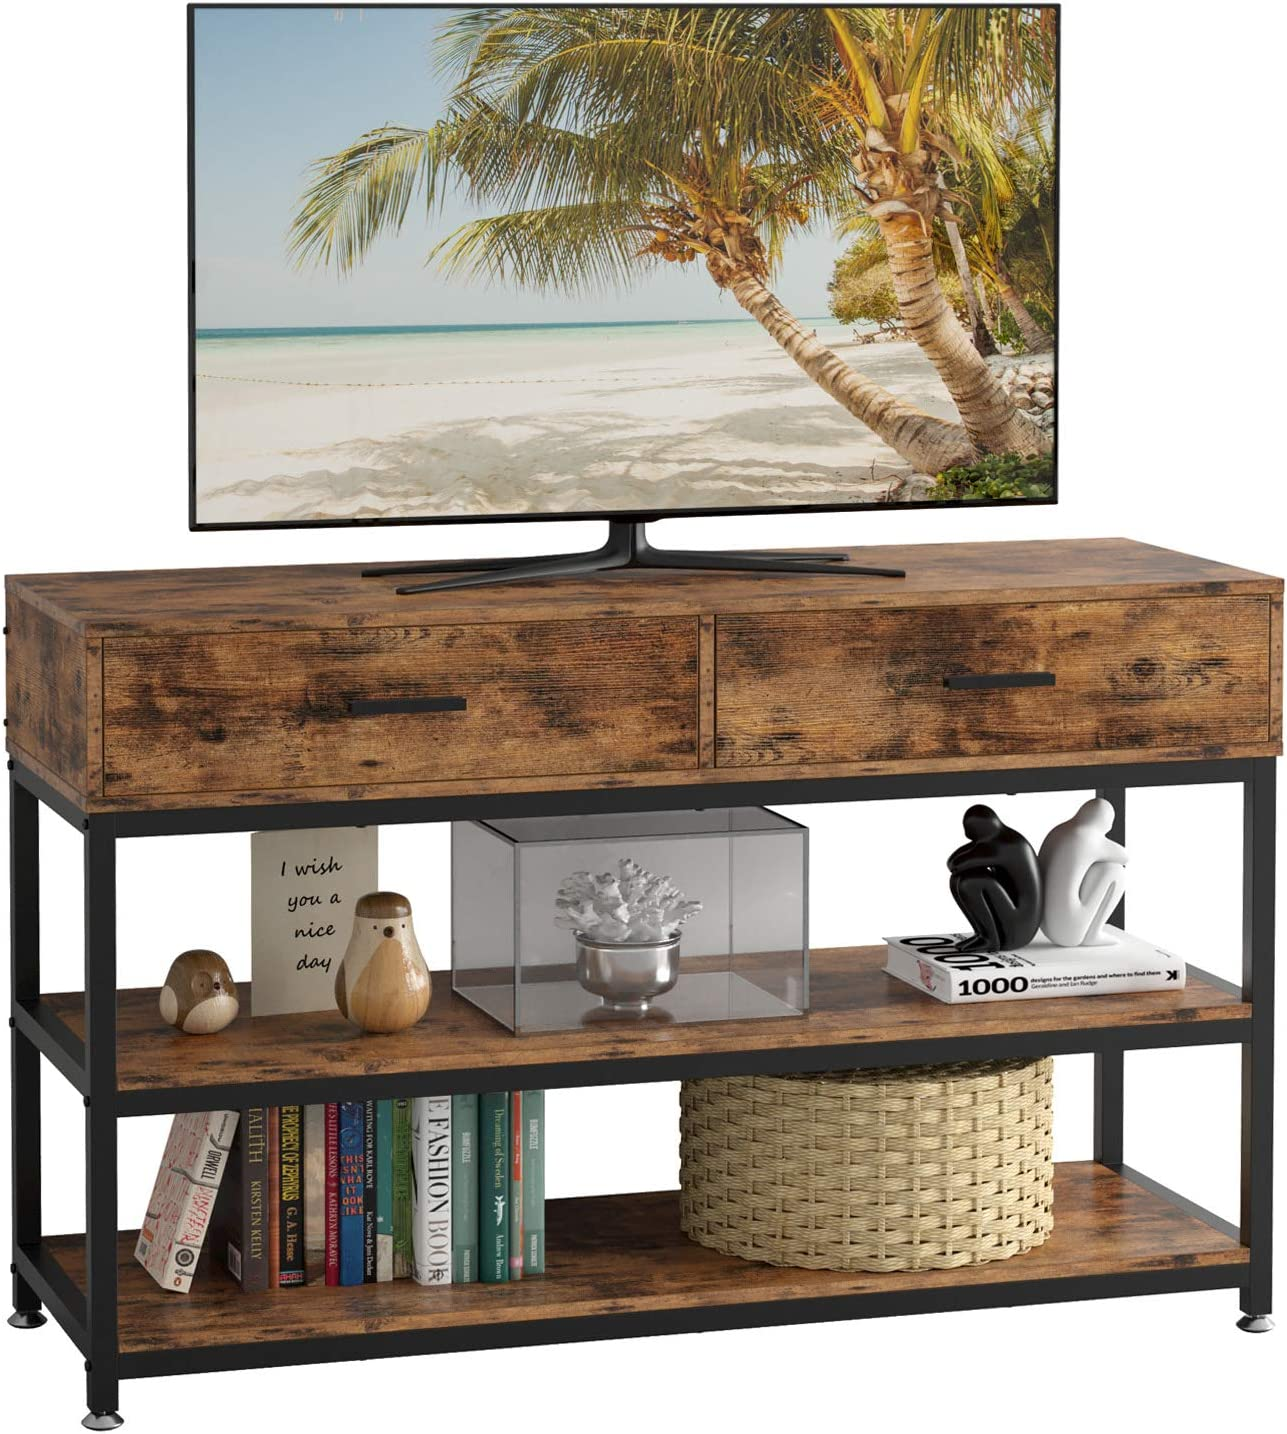 IRONCK Industrial TV Stand for 55 Inch TV with Drawers, TV Stand Console Table Entertainment Center for Living Room, 47.2x15.7x29.5 Inches, Vintage Brown